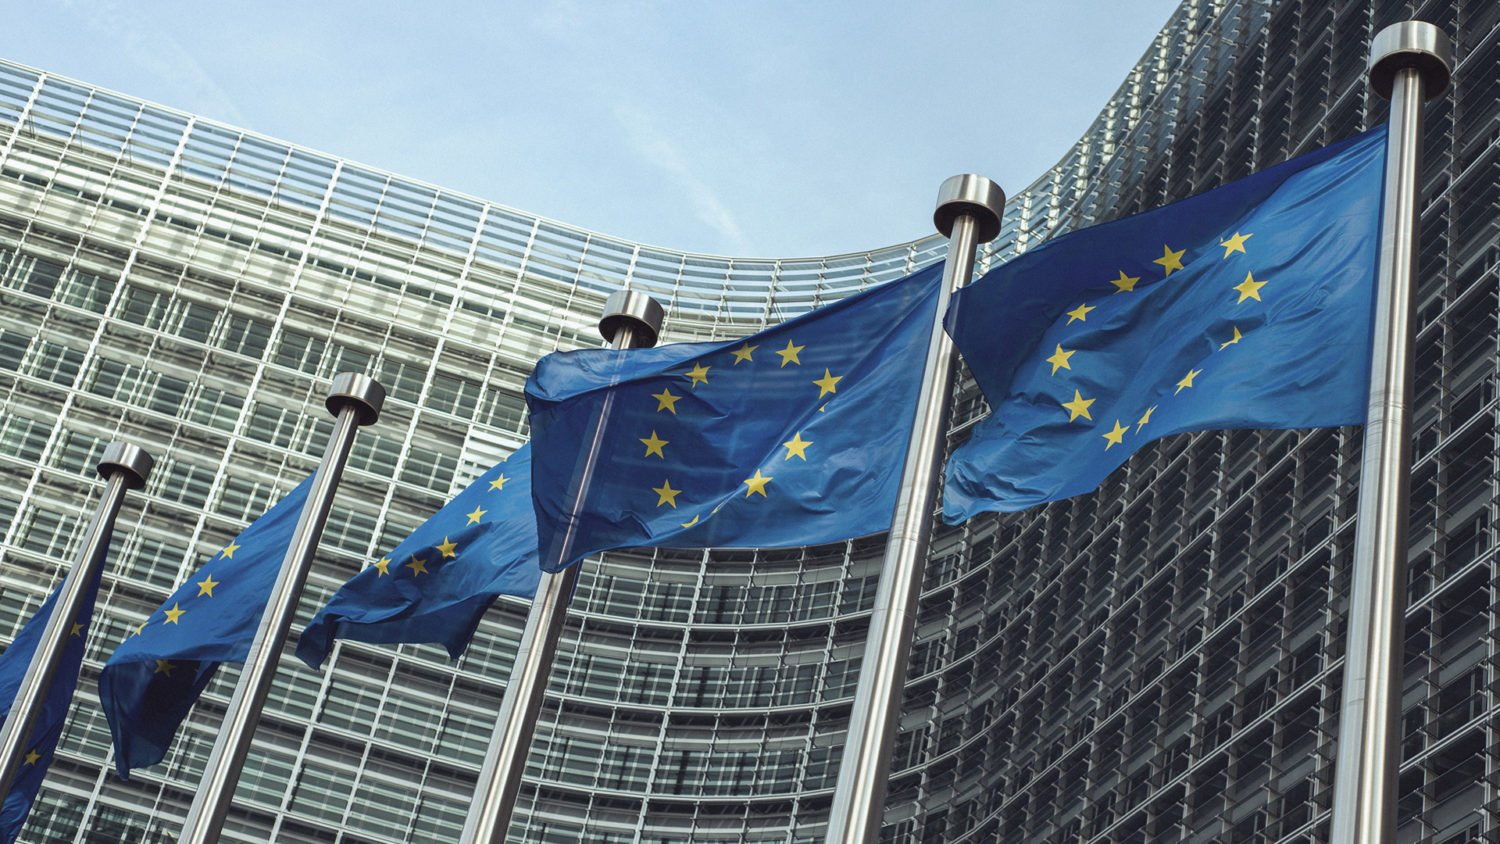 European Union official pledges action on stablecoins after calls for new curbs